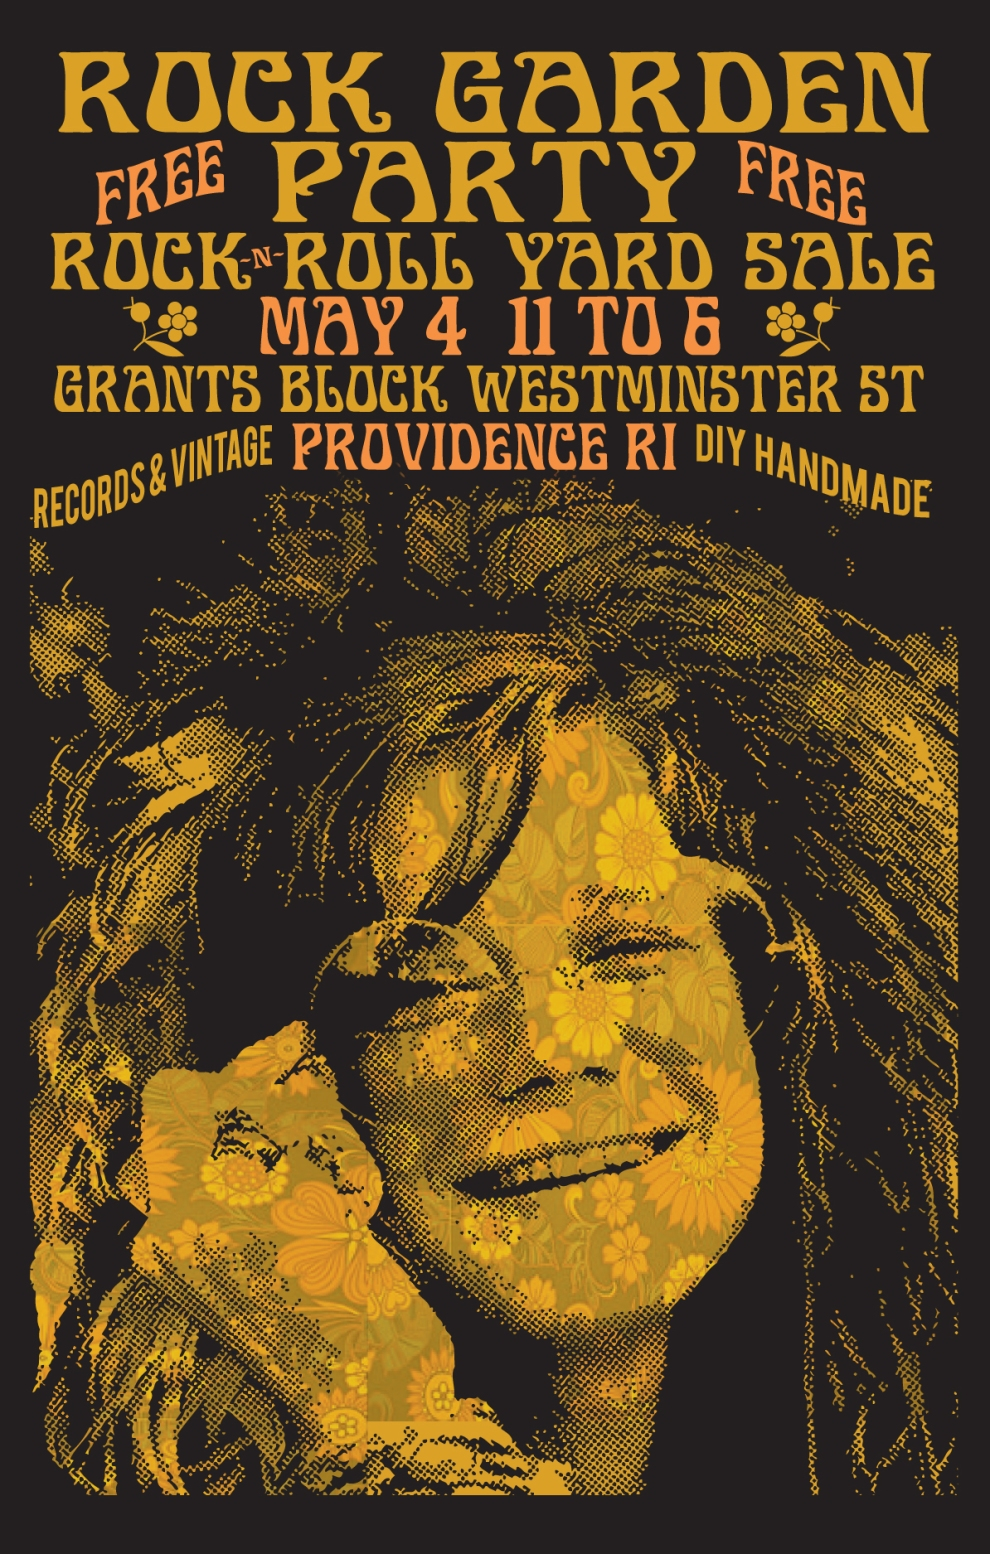 the Providence Rock And Roll Yard Sale 5.4.19 at the Rock Garden Party